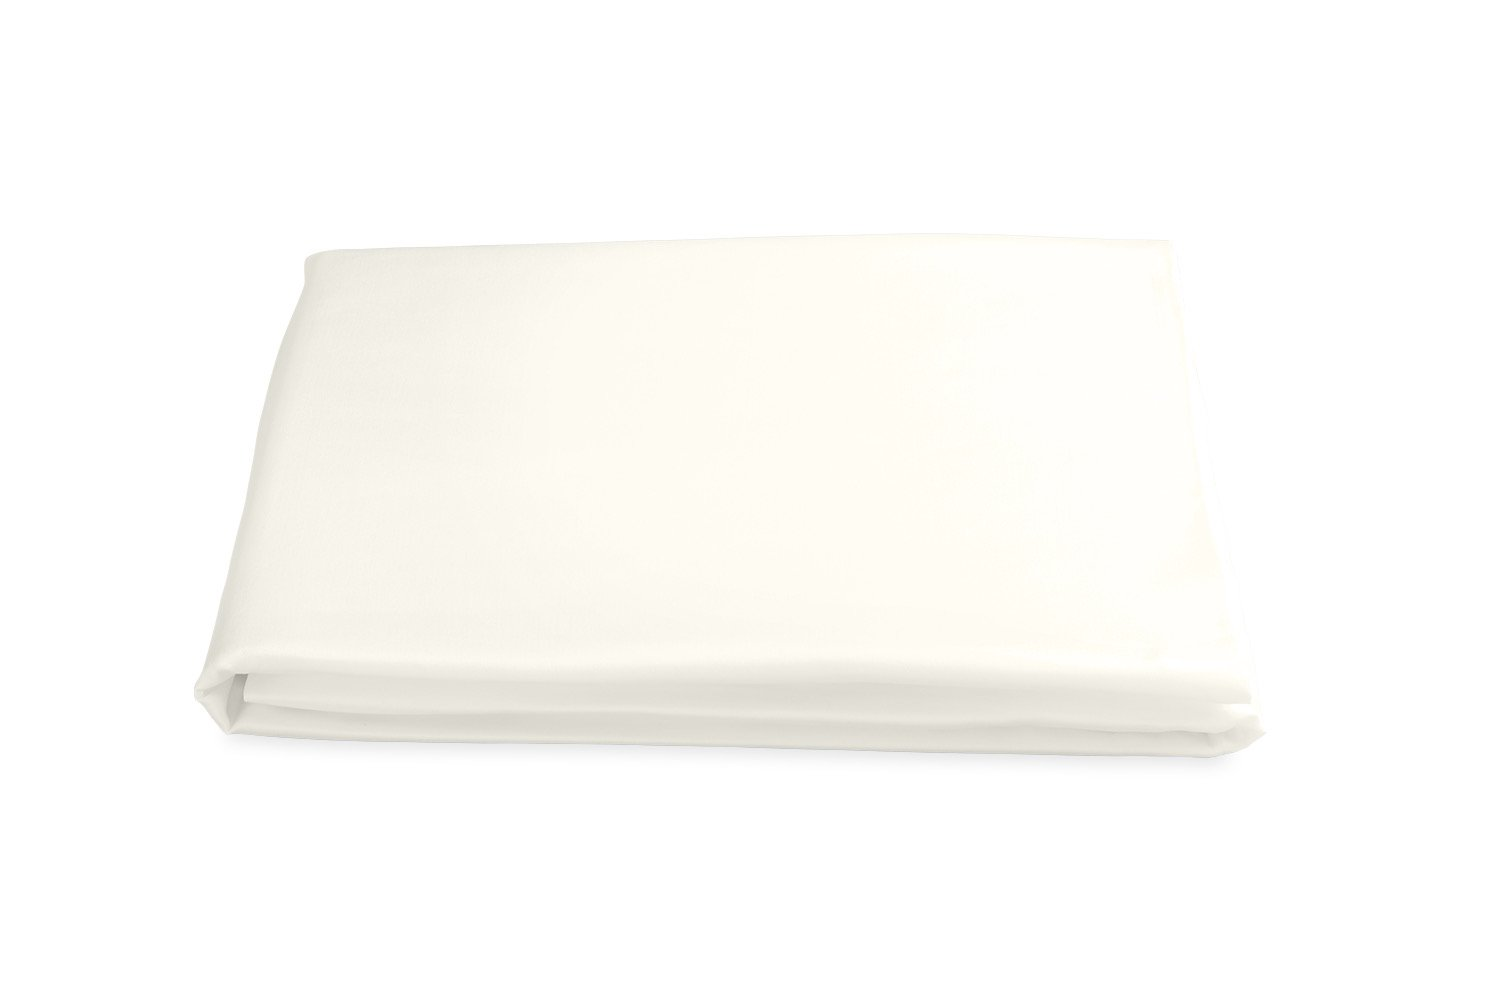 Milano Hemstitch Fitted Sheet in Ivory | Matouk at Fig Linens